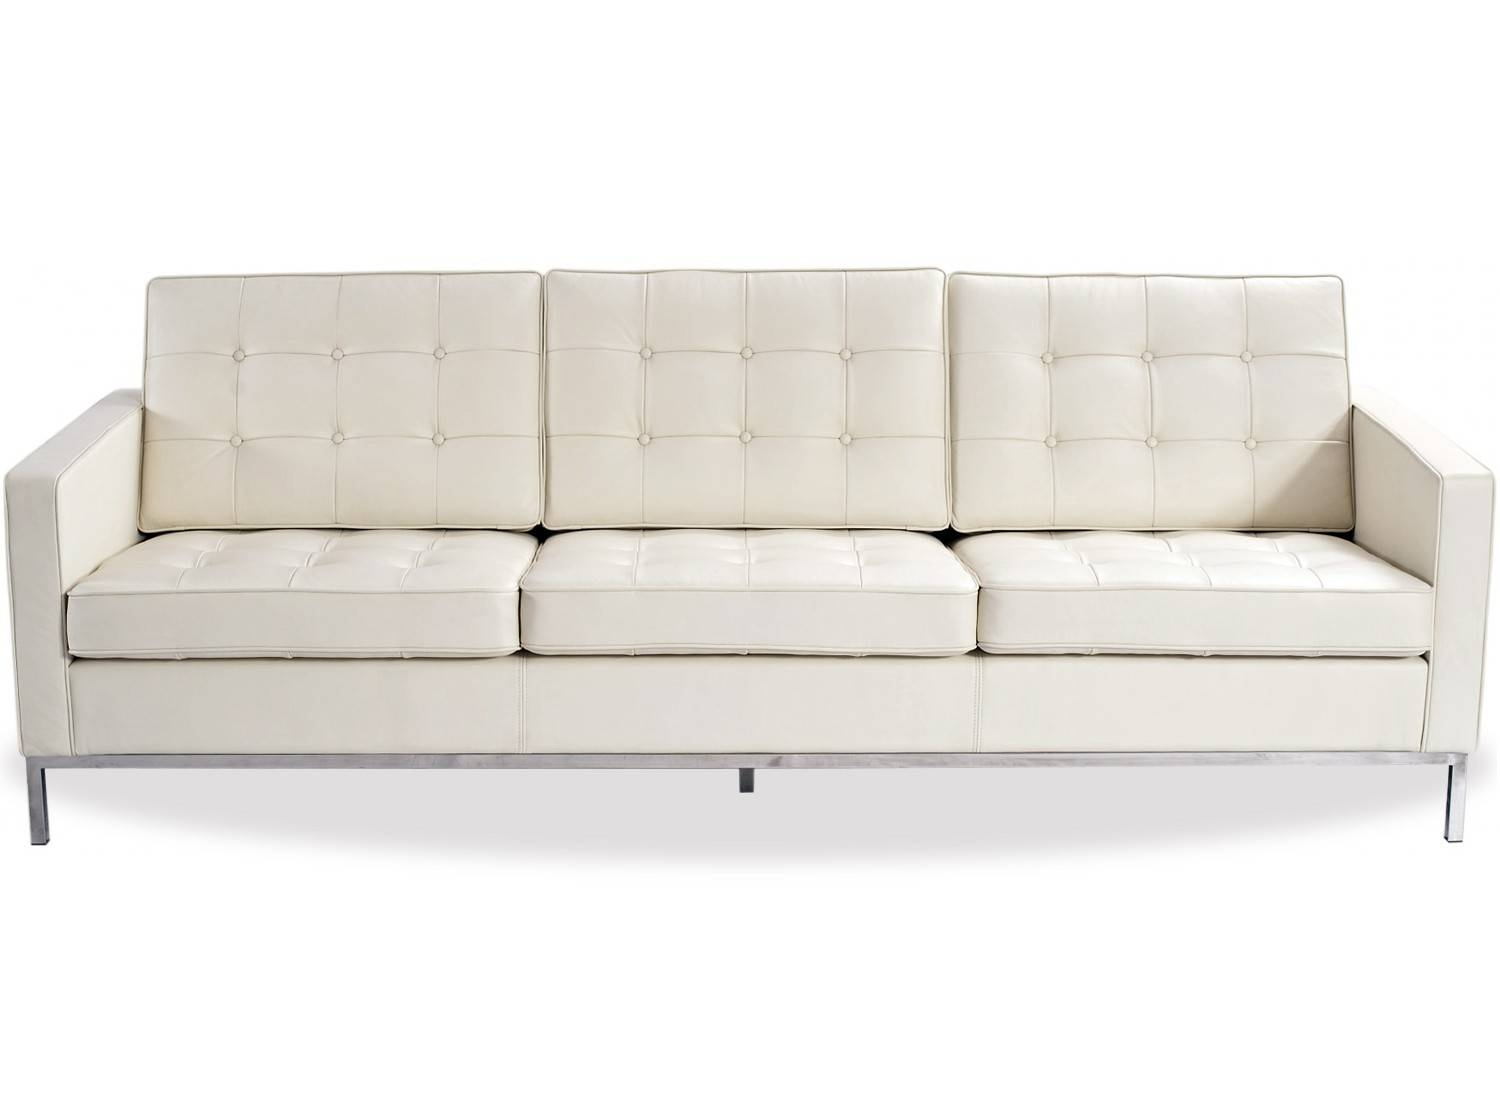 Florence Knoll Sofa 3 Seater Leather (Replica)-Aniline Leather-005 for Florence Knoll 3 Seater Sofas (Image 17 of 30)